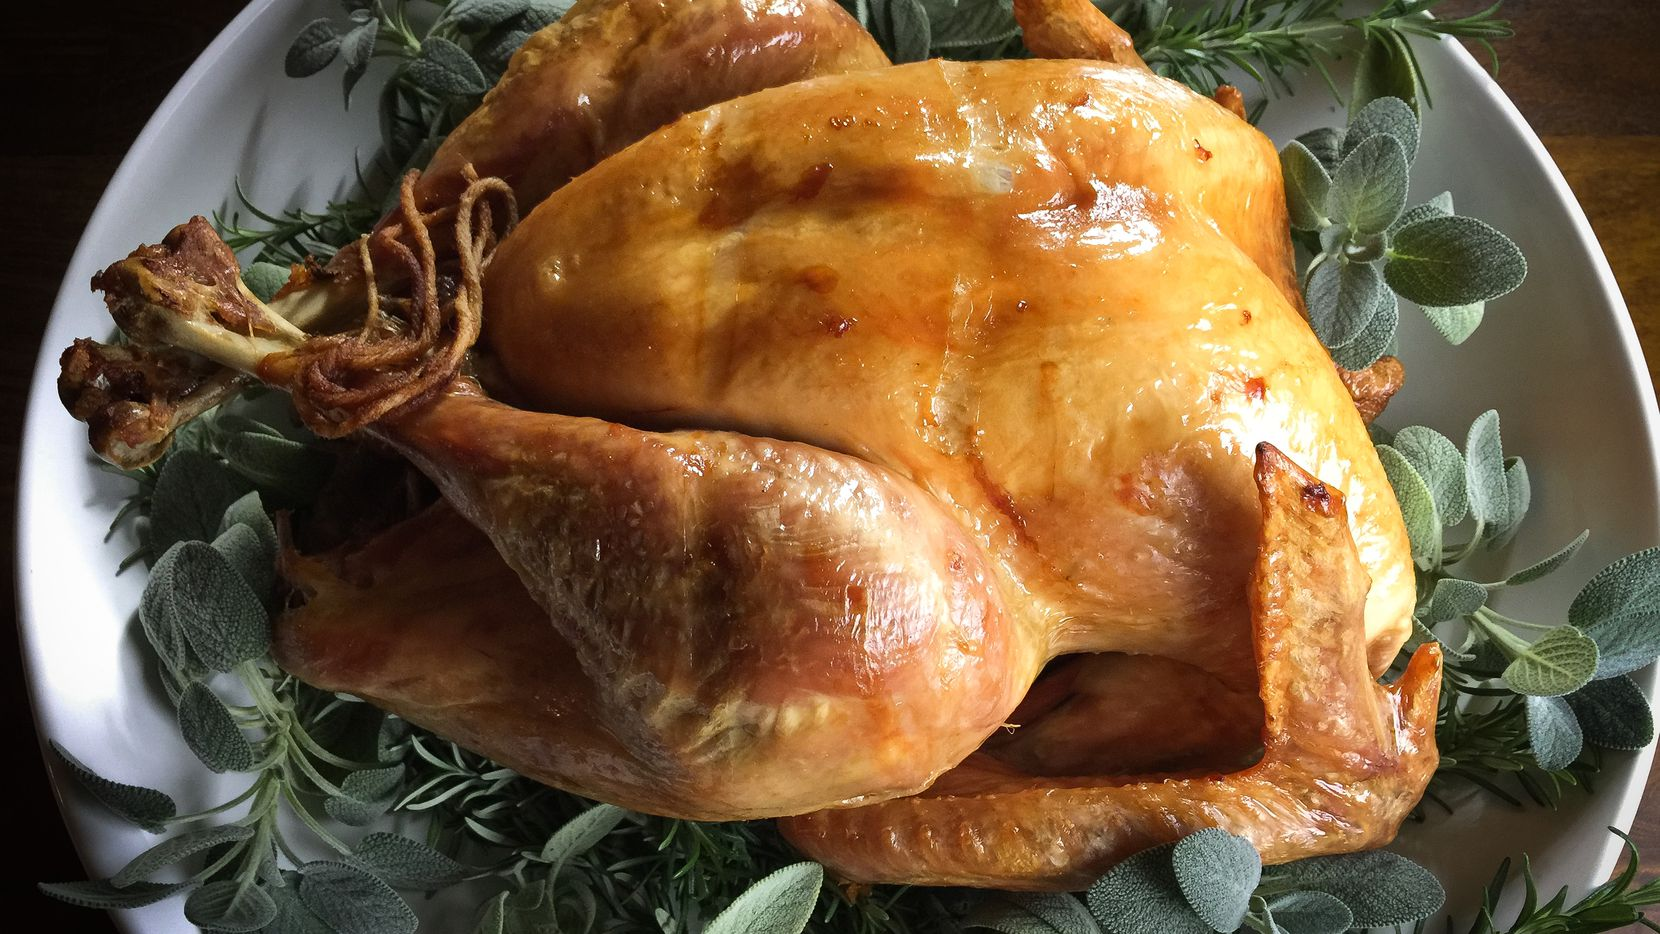 A dry-brined roasted turkey, served with Cognac sauce (not gravy!), is the centerpiece of Leslie Brenner's Thanksgiving dinner.